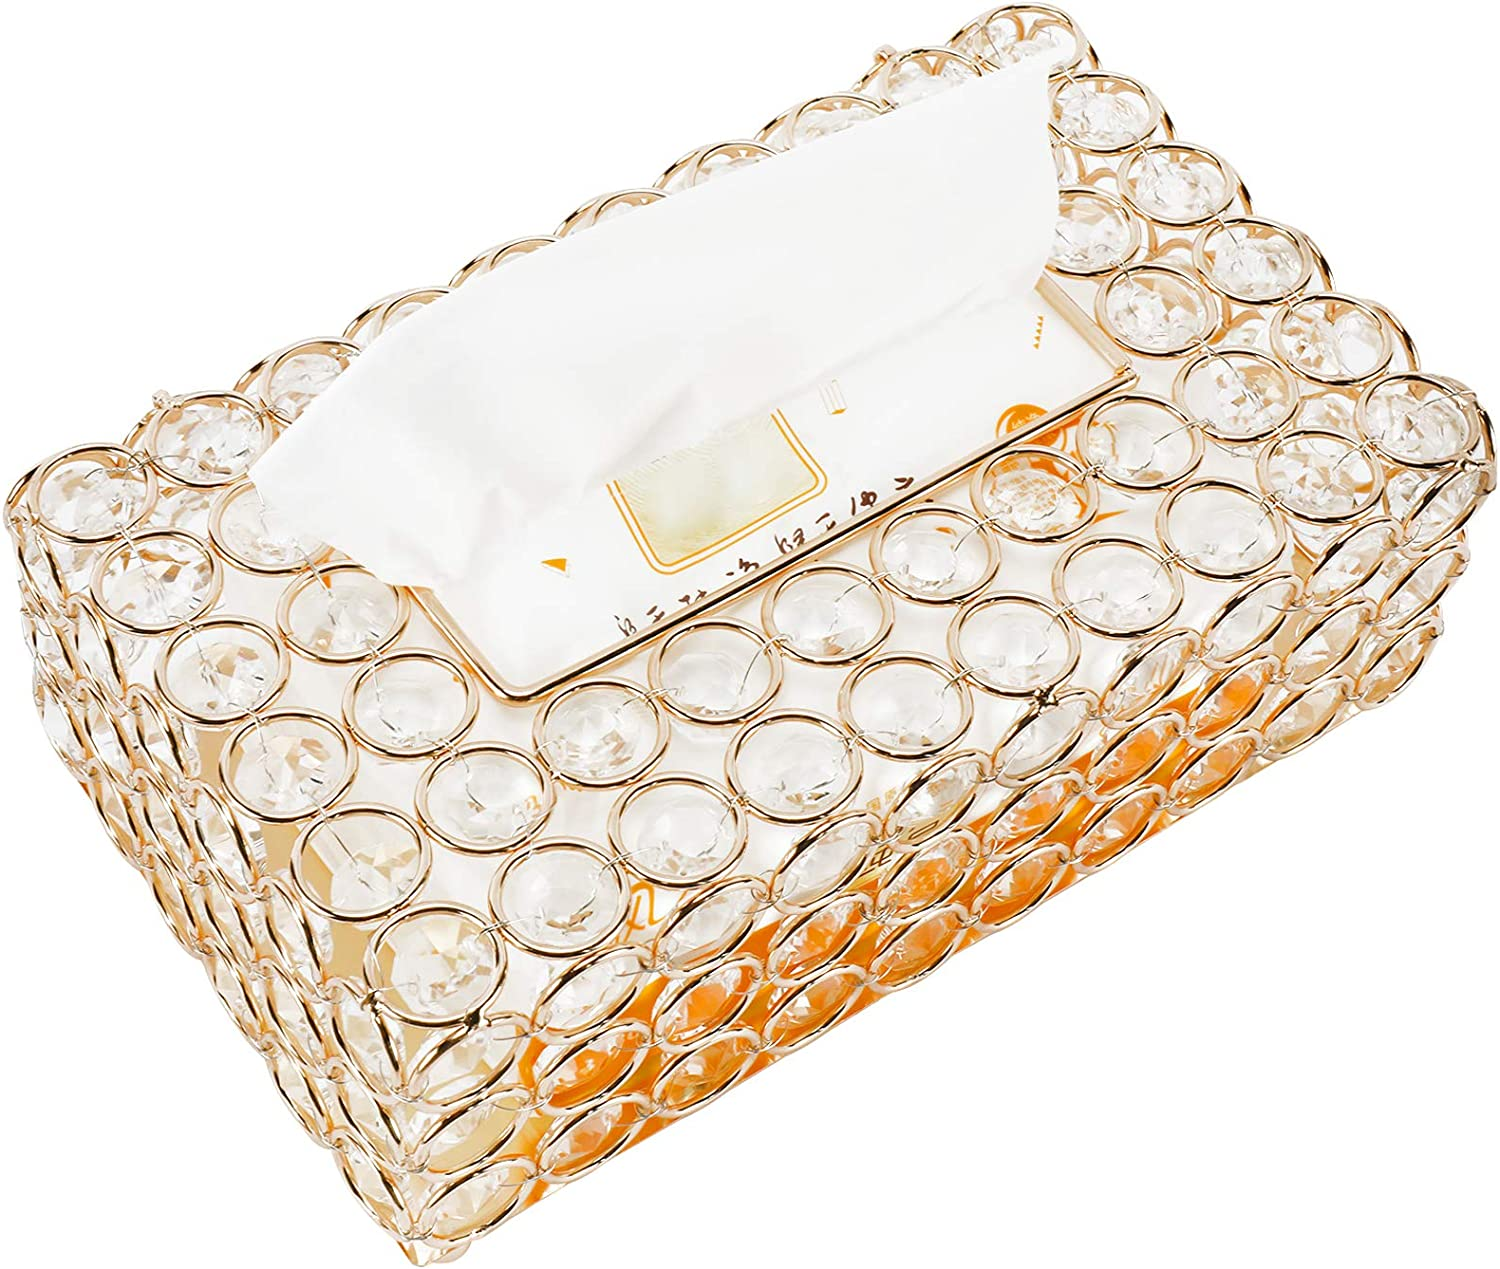 HighFree Rectangular Crystal Tissue Box Max 40% OFF Napkin Decor Cheap mail order specialty store Case Steel